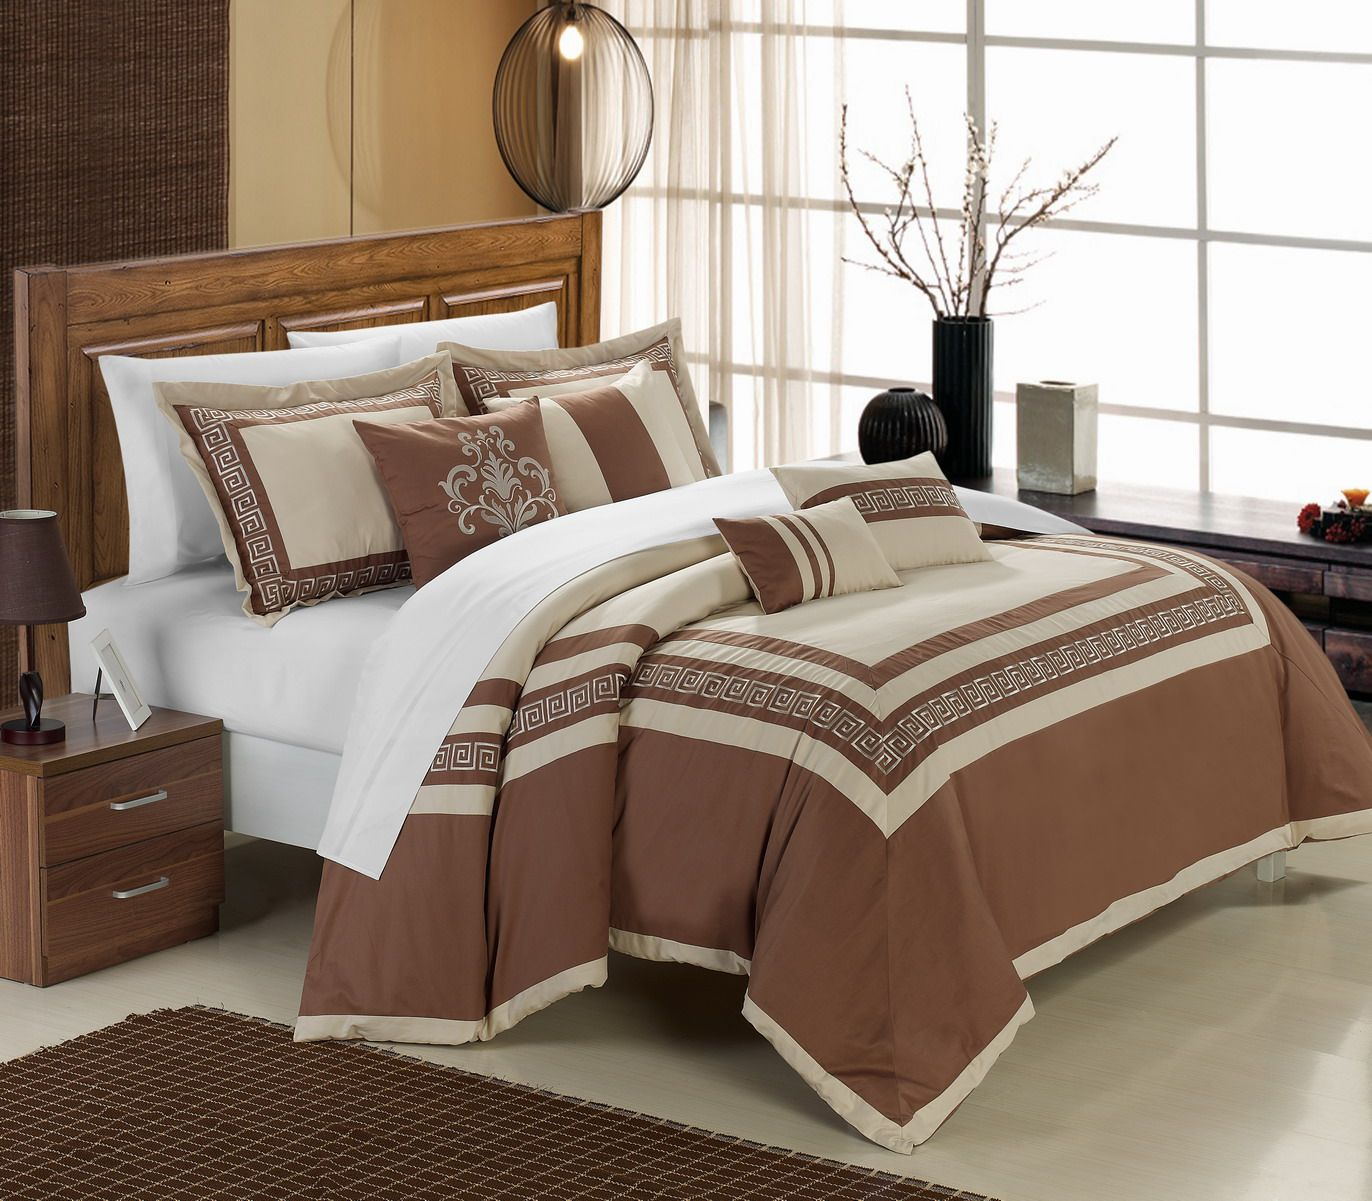 100 Cotton 200 Thread Count Luxurious 7 Pcs Comforter Set The Essence Of Pure Luxury Cotton In A Traditional Opulen Comforter Sets Remodel Bedroom Chic Home